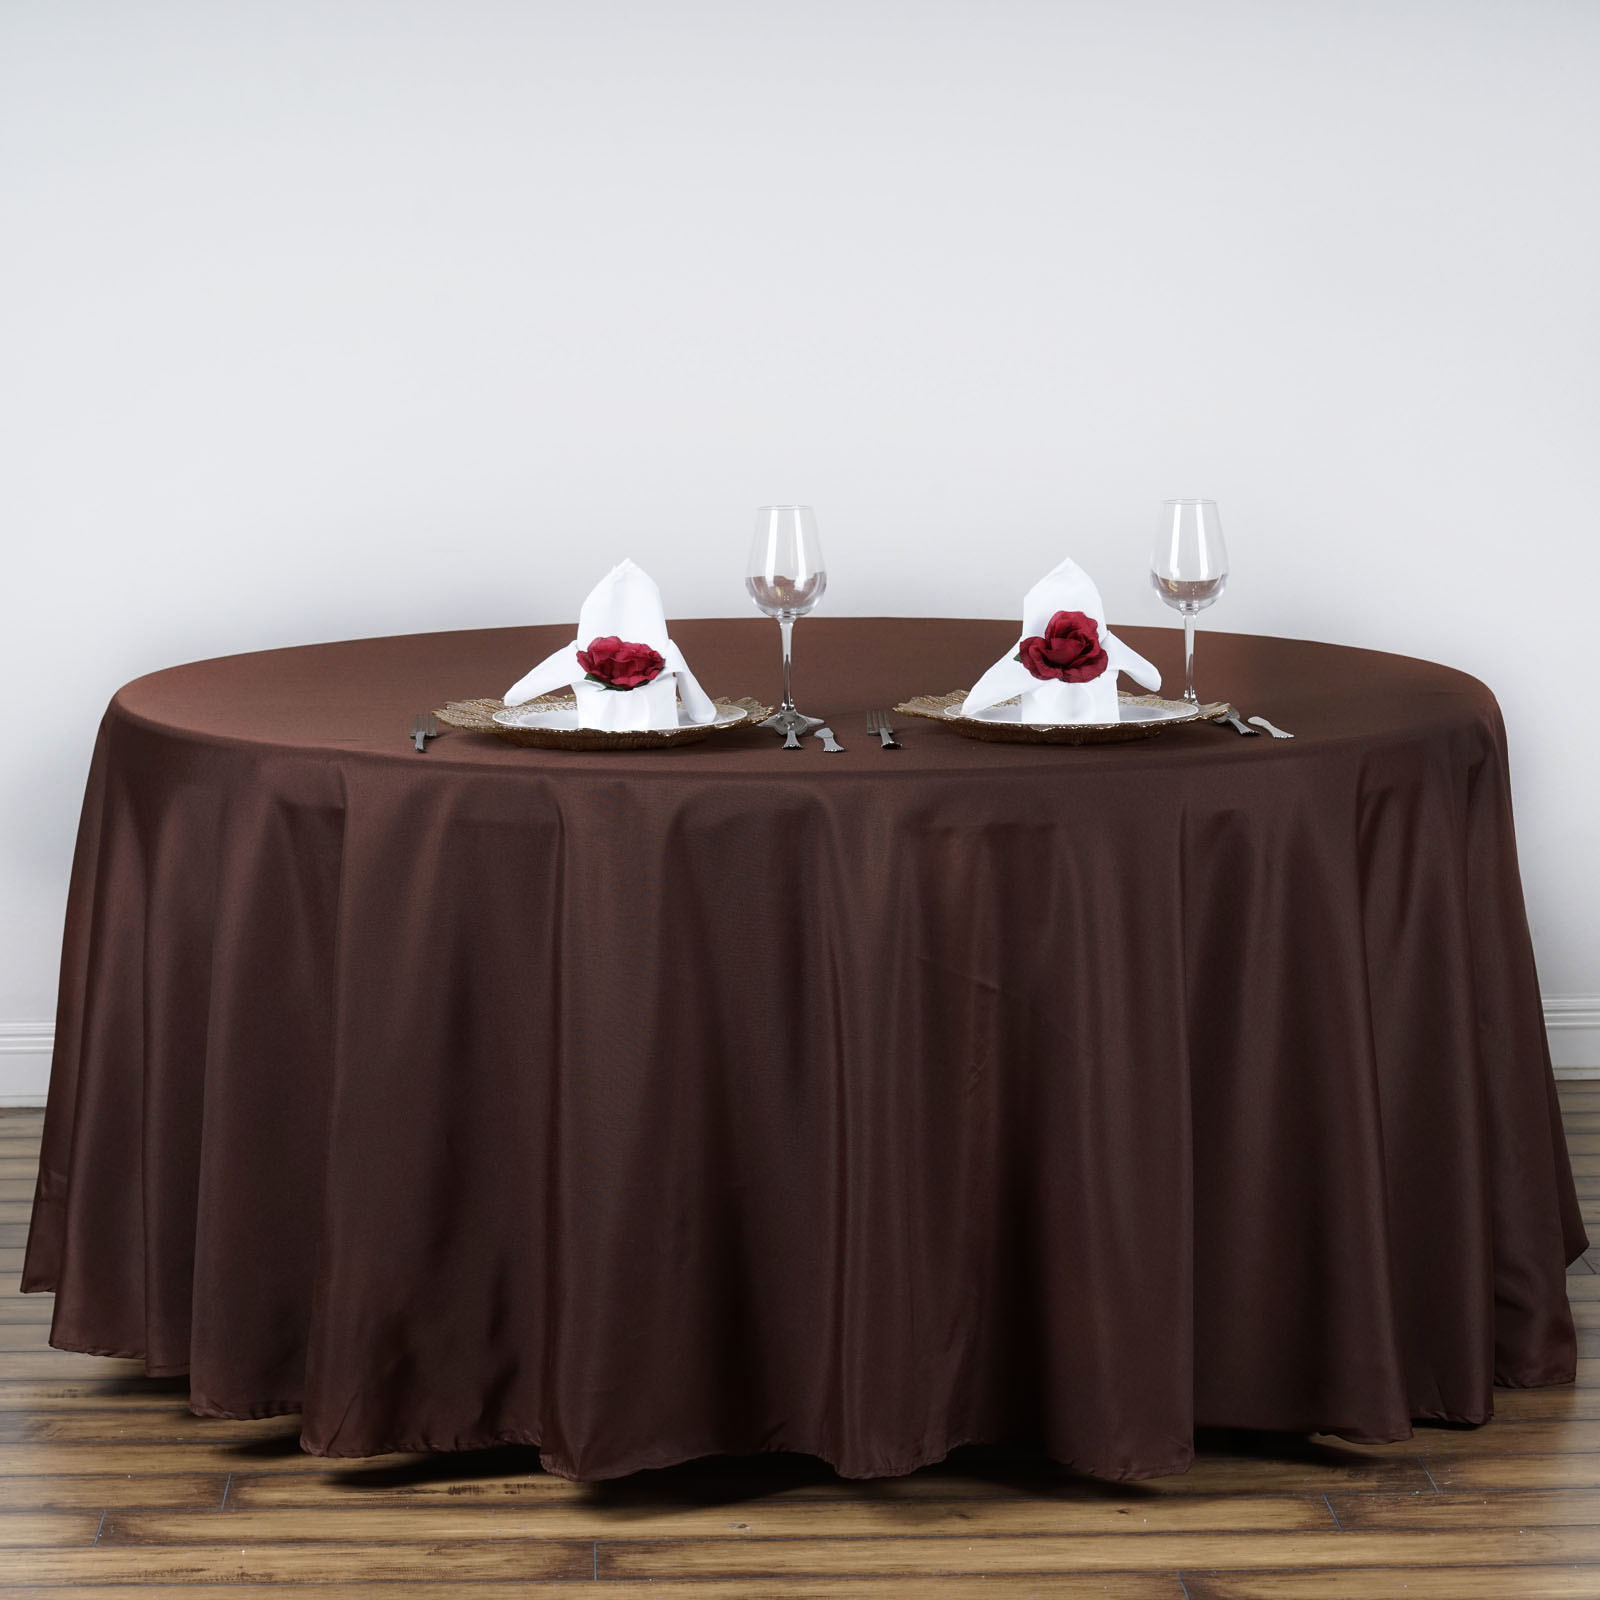 15 pcs Wholesale Lot 120quot ROUND POLYESTER TABLECLOTHS Fine  : tab120choc01 from www.ebay.com size 1600 x 1600 jpeg 196kB